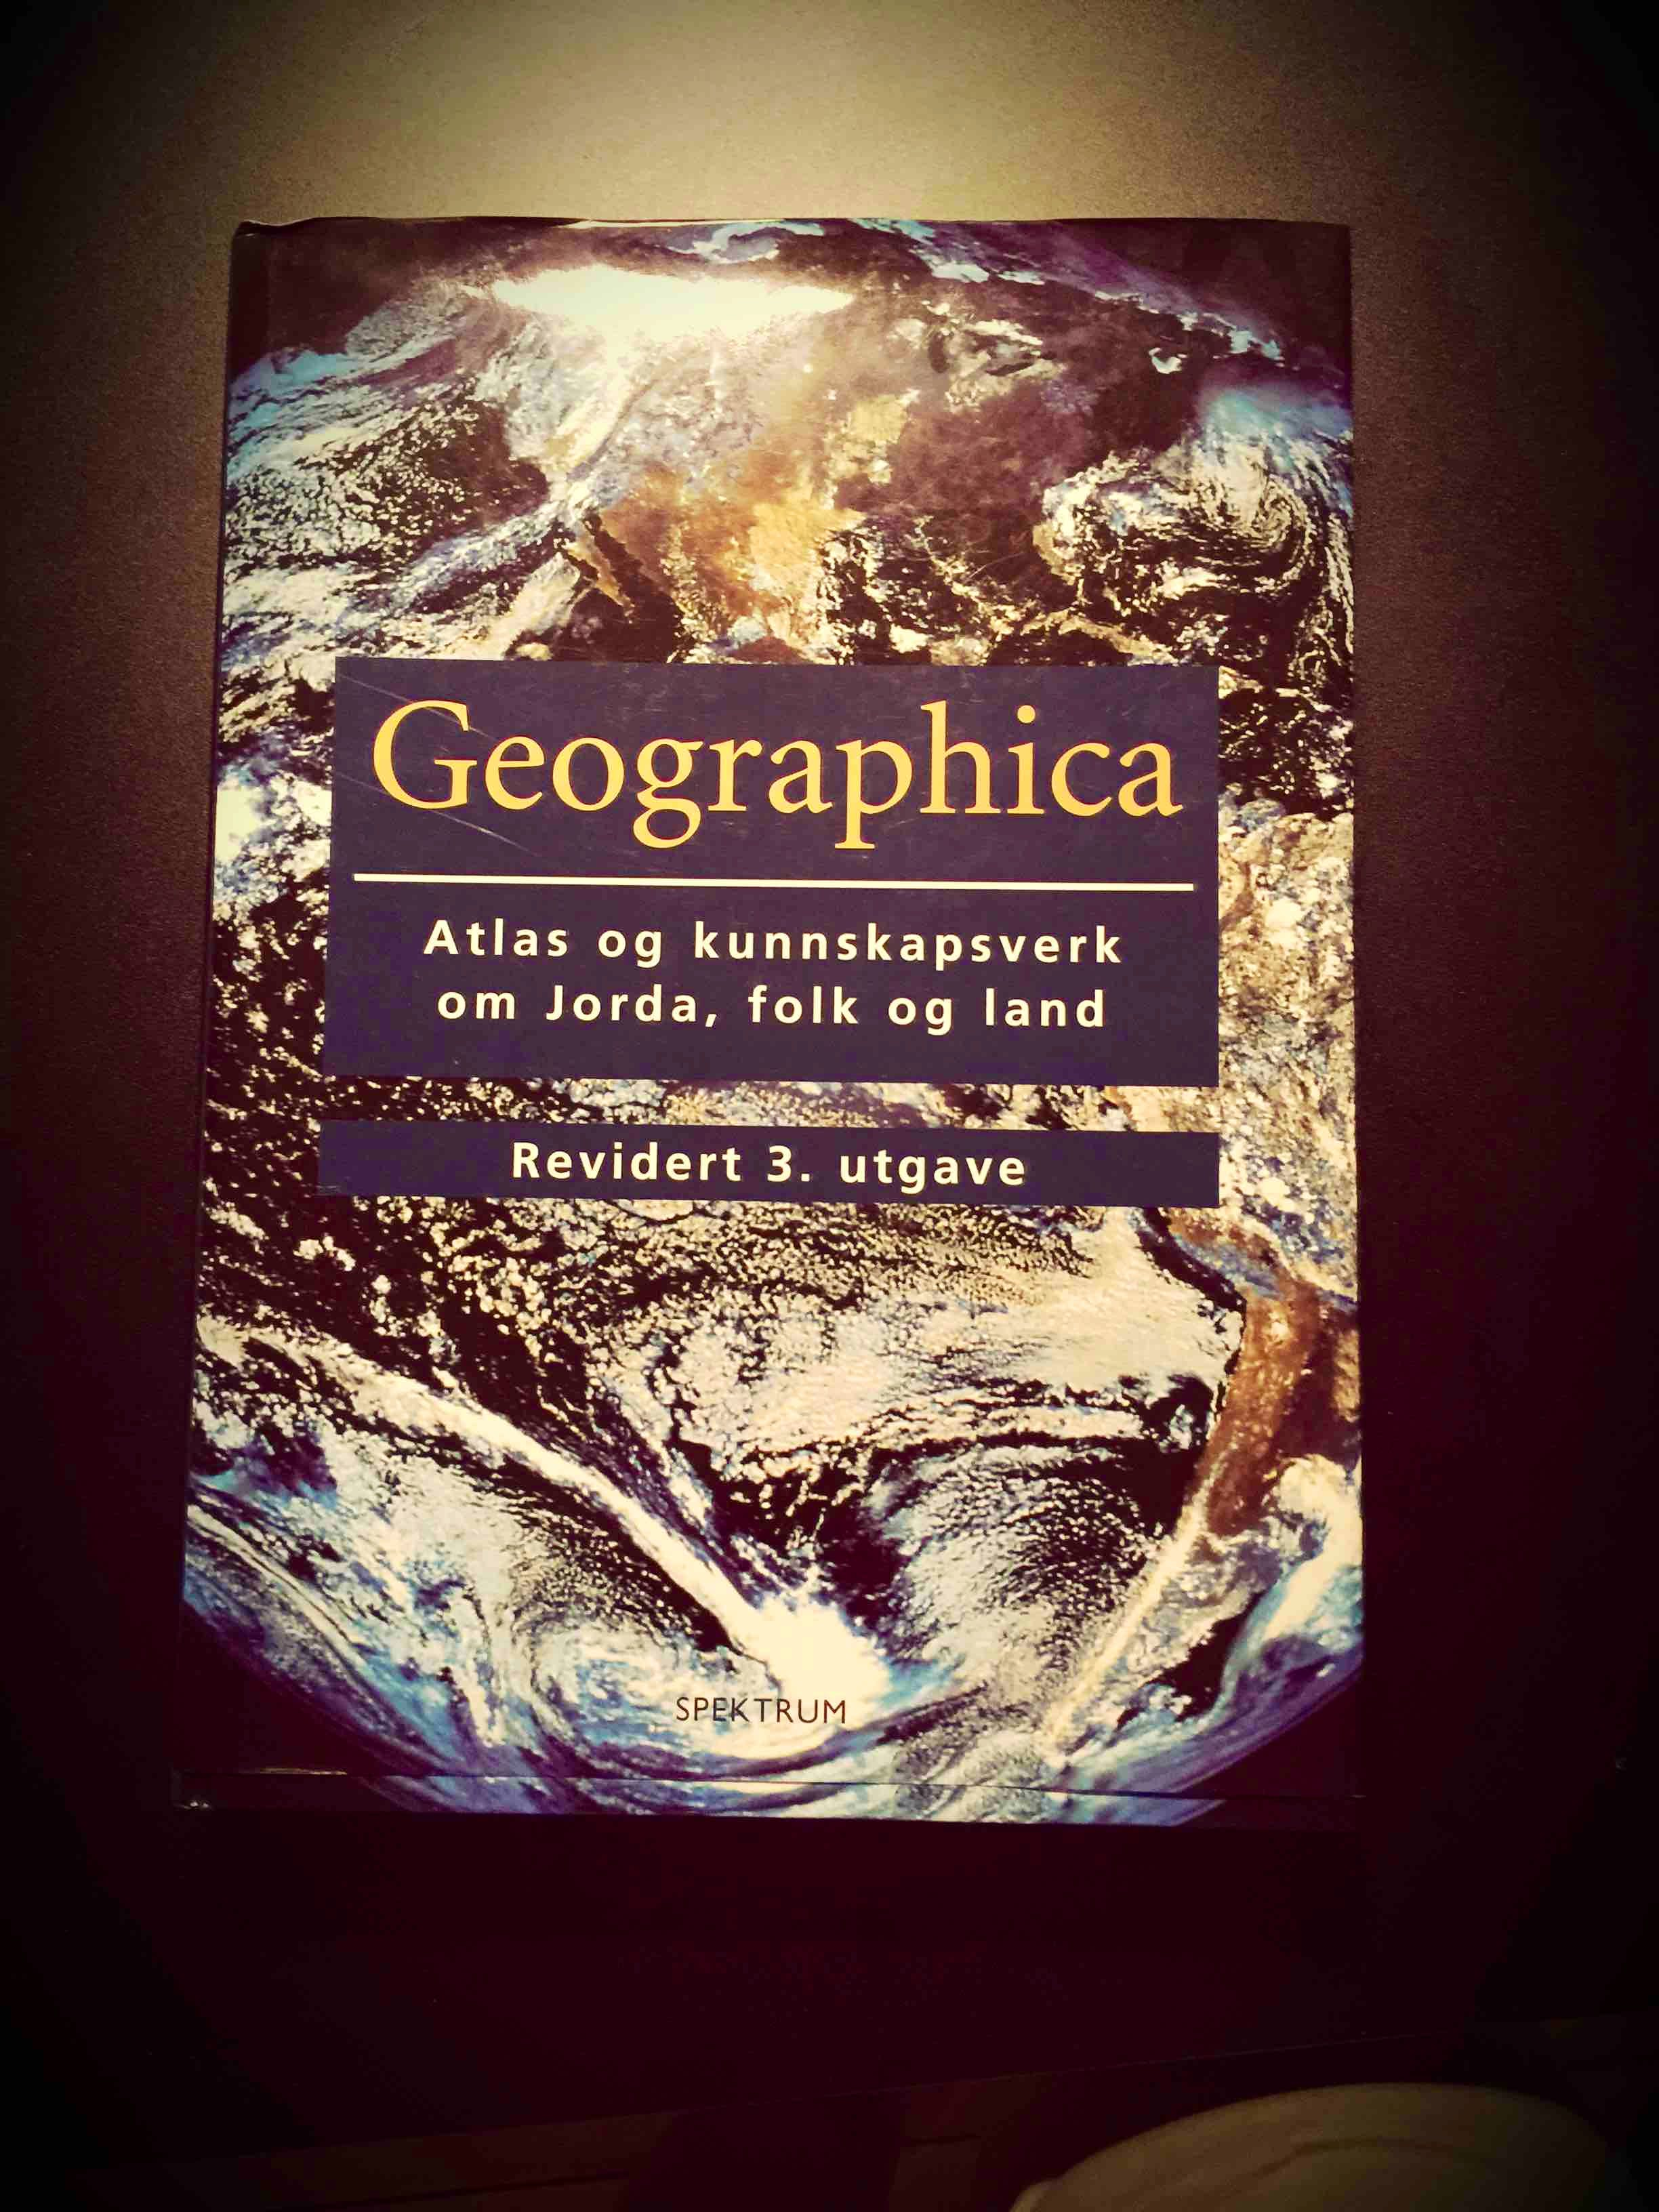 A book full of maps